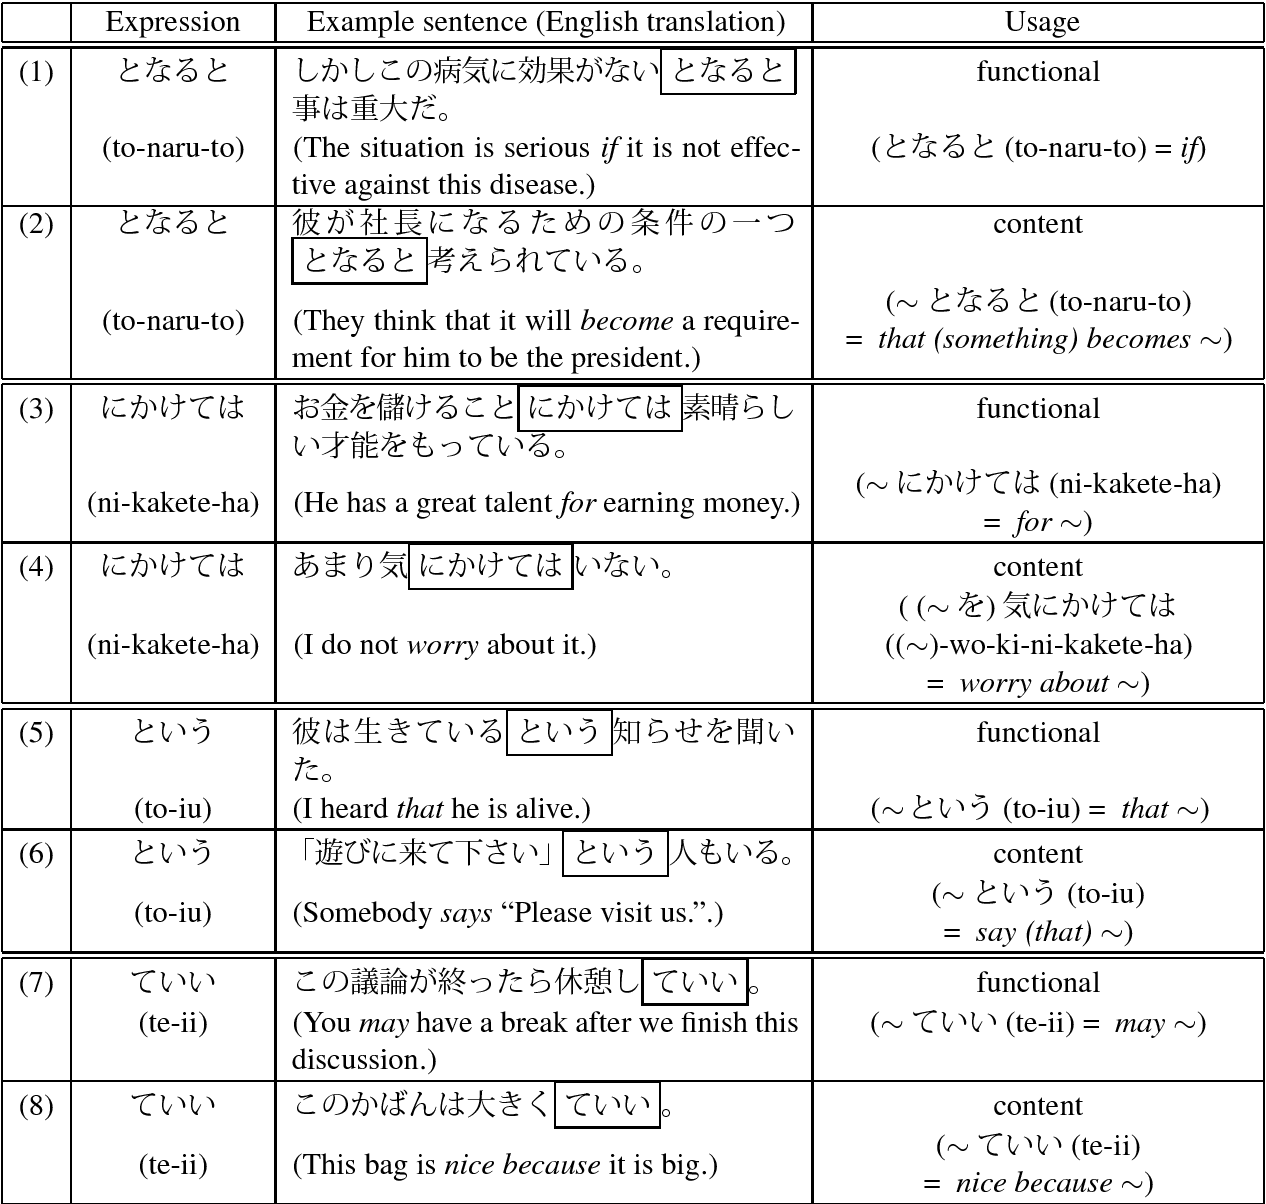 Table 3 from Chunking Japanese Compound Functional Expressions By